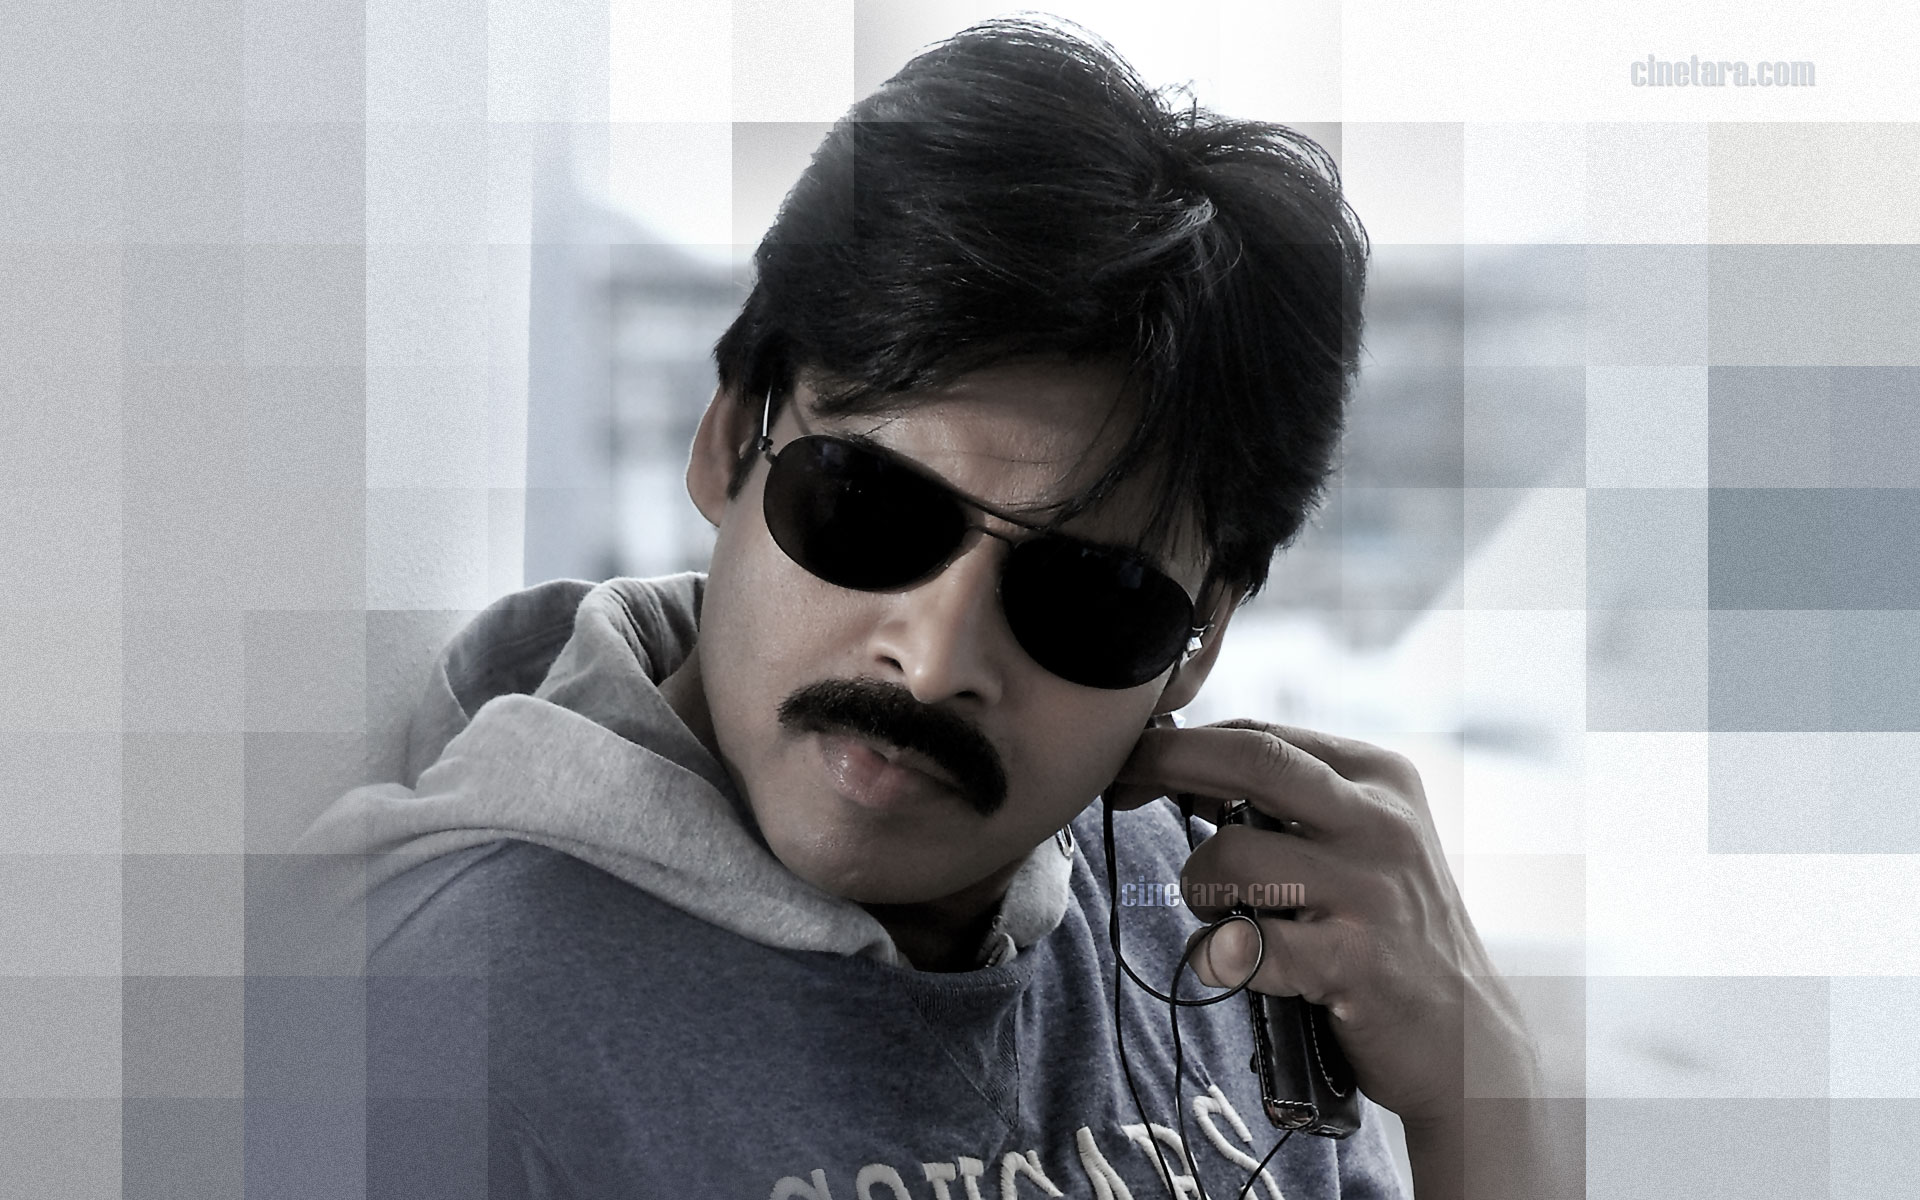 pavan kalyan background by cody barnwill on goldwallpapers com pavan kalyan background by cody